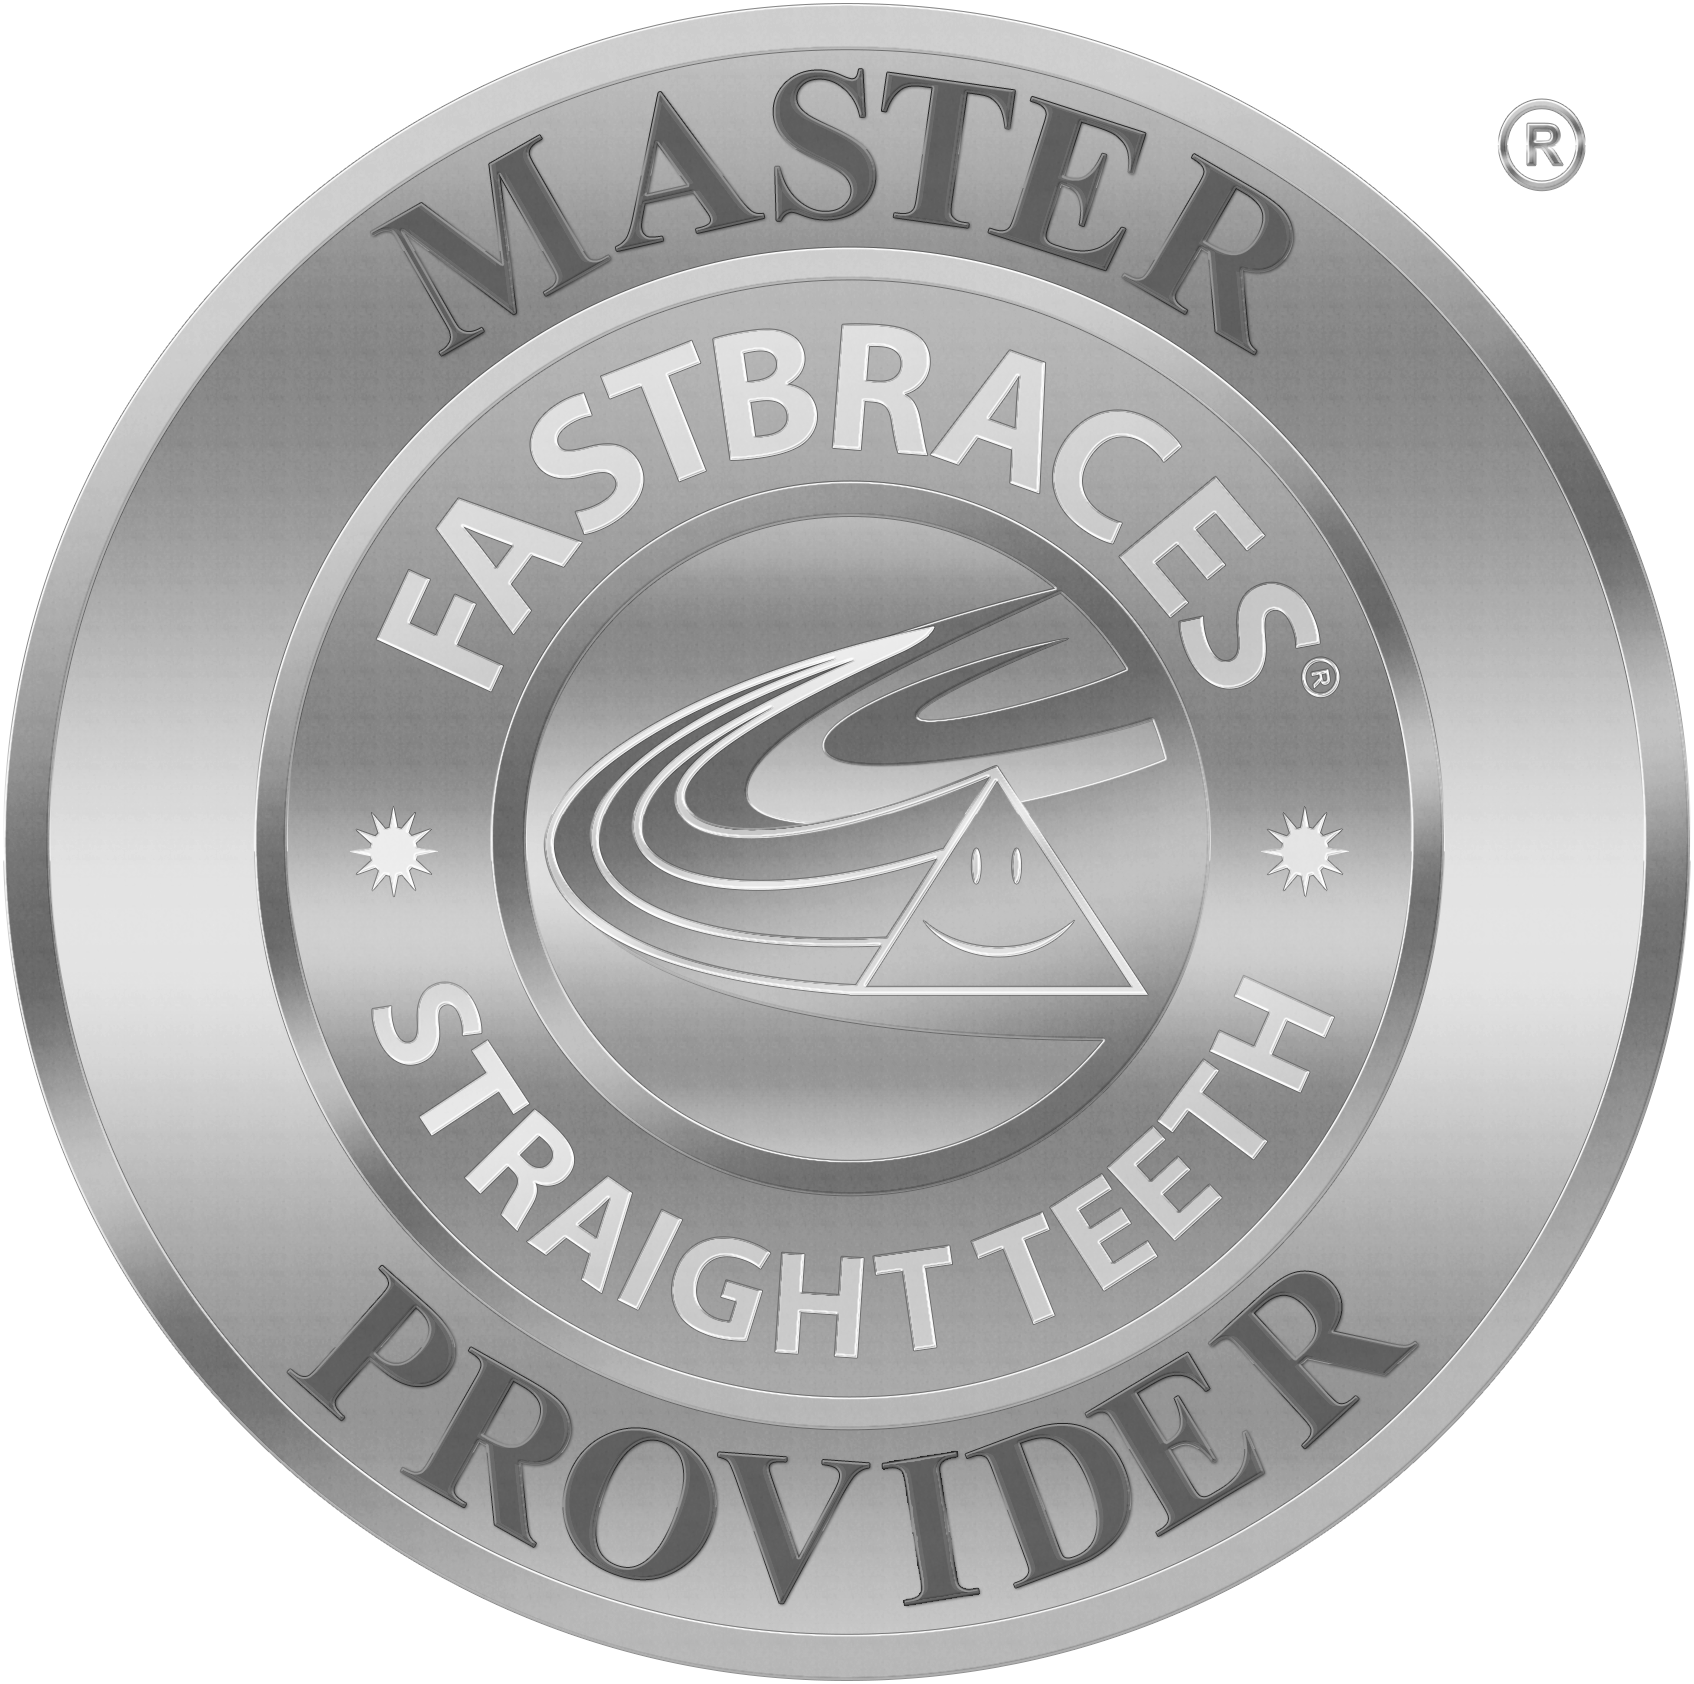 Fastbraces Master provider Inverness, Aviemore